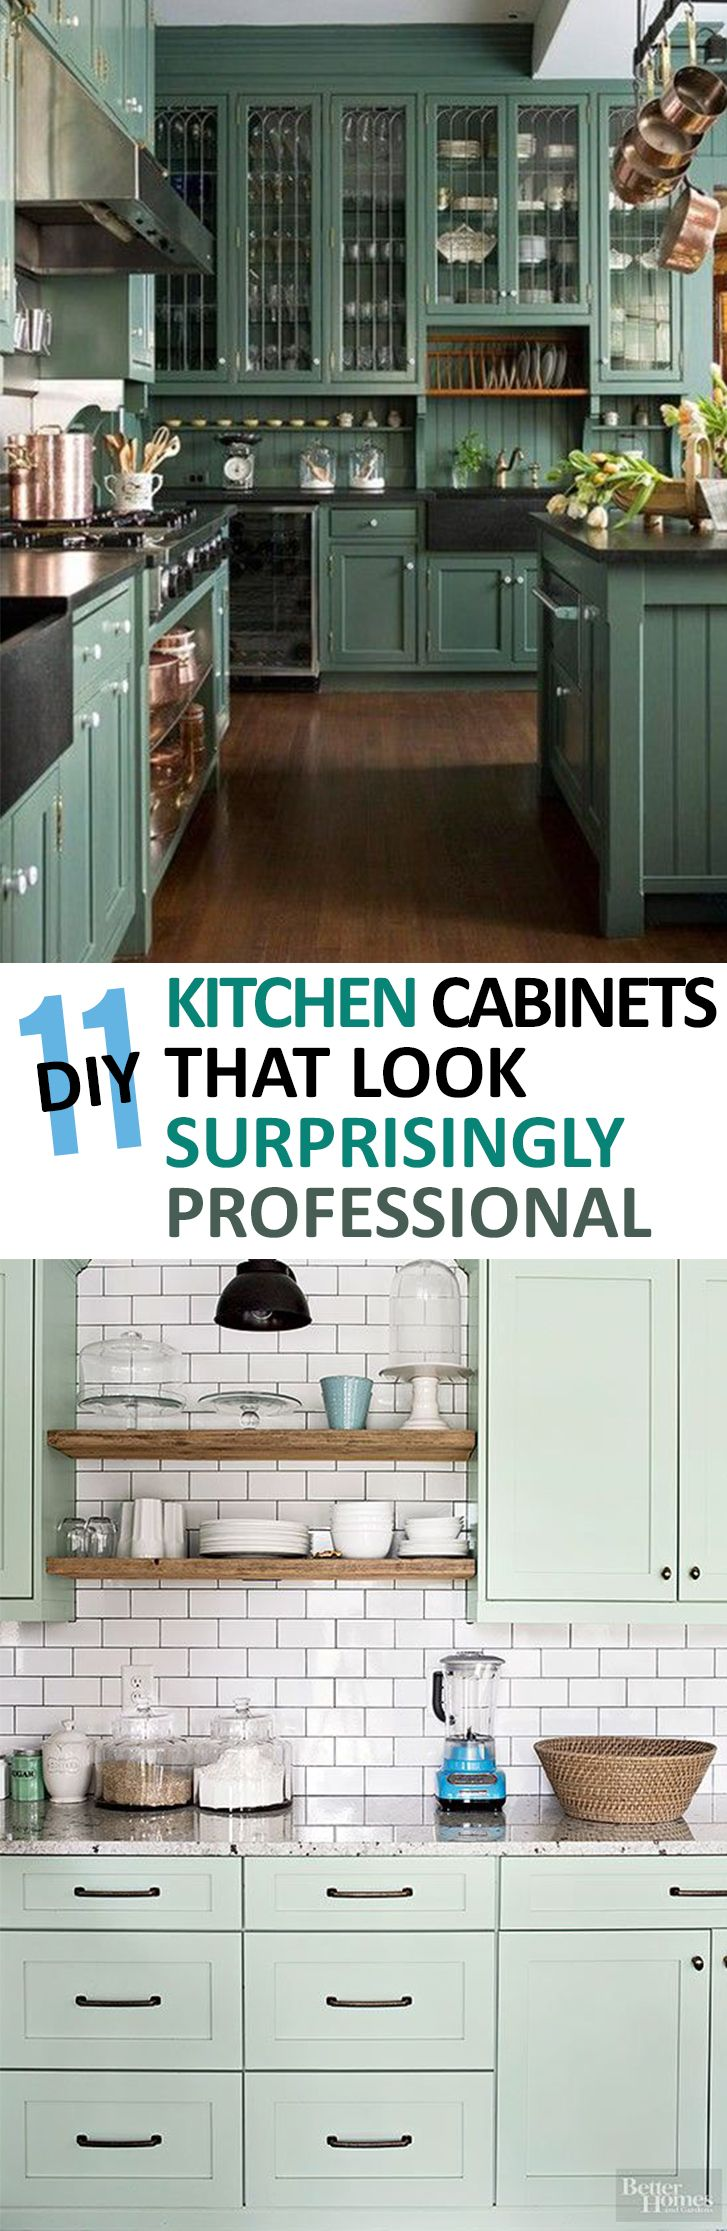 11 DIY Kitchen Cabinets That Look Surprisingly Professional DIY Crafts Feel  Free To Visit Www.